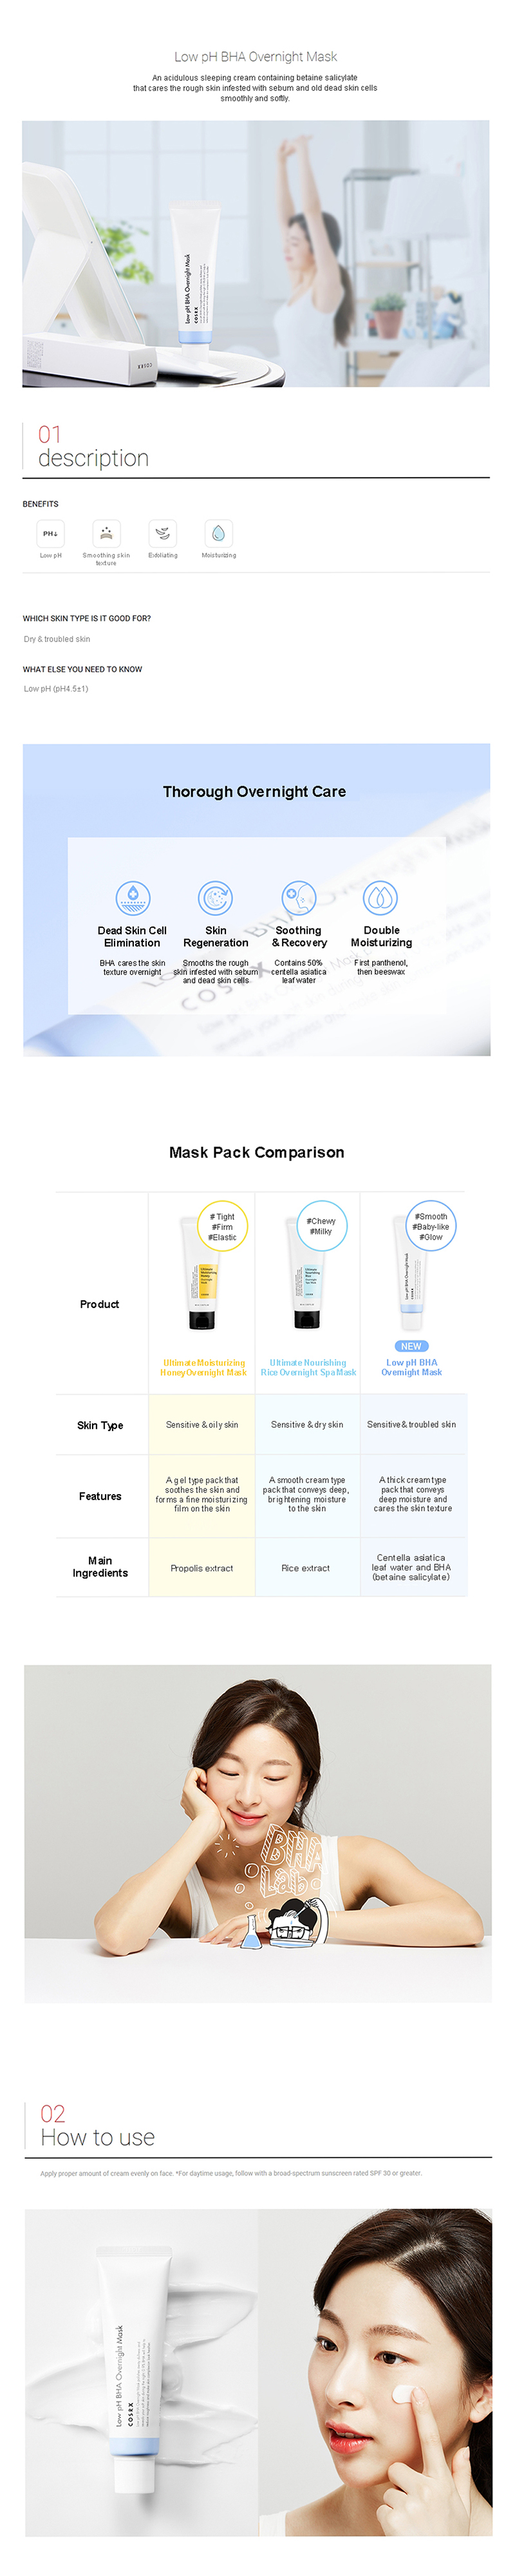 Low PH BHA Overnight Mask 50ml How to Use Description Ingredients